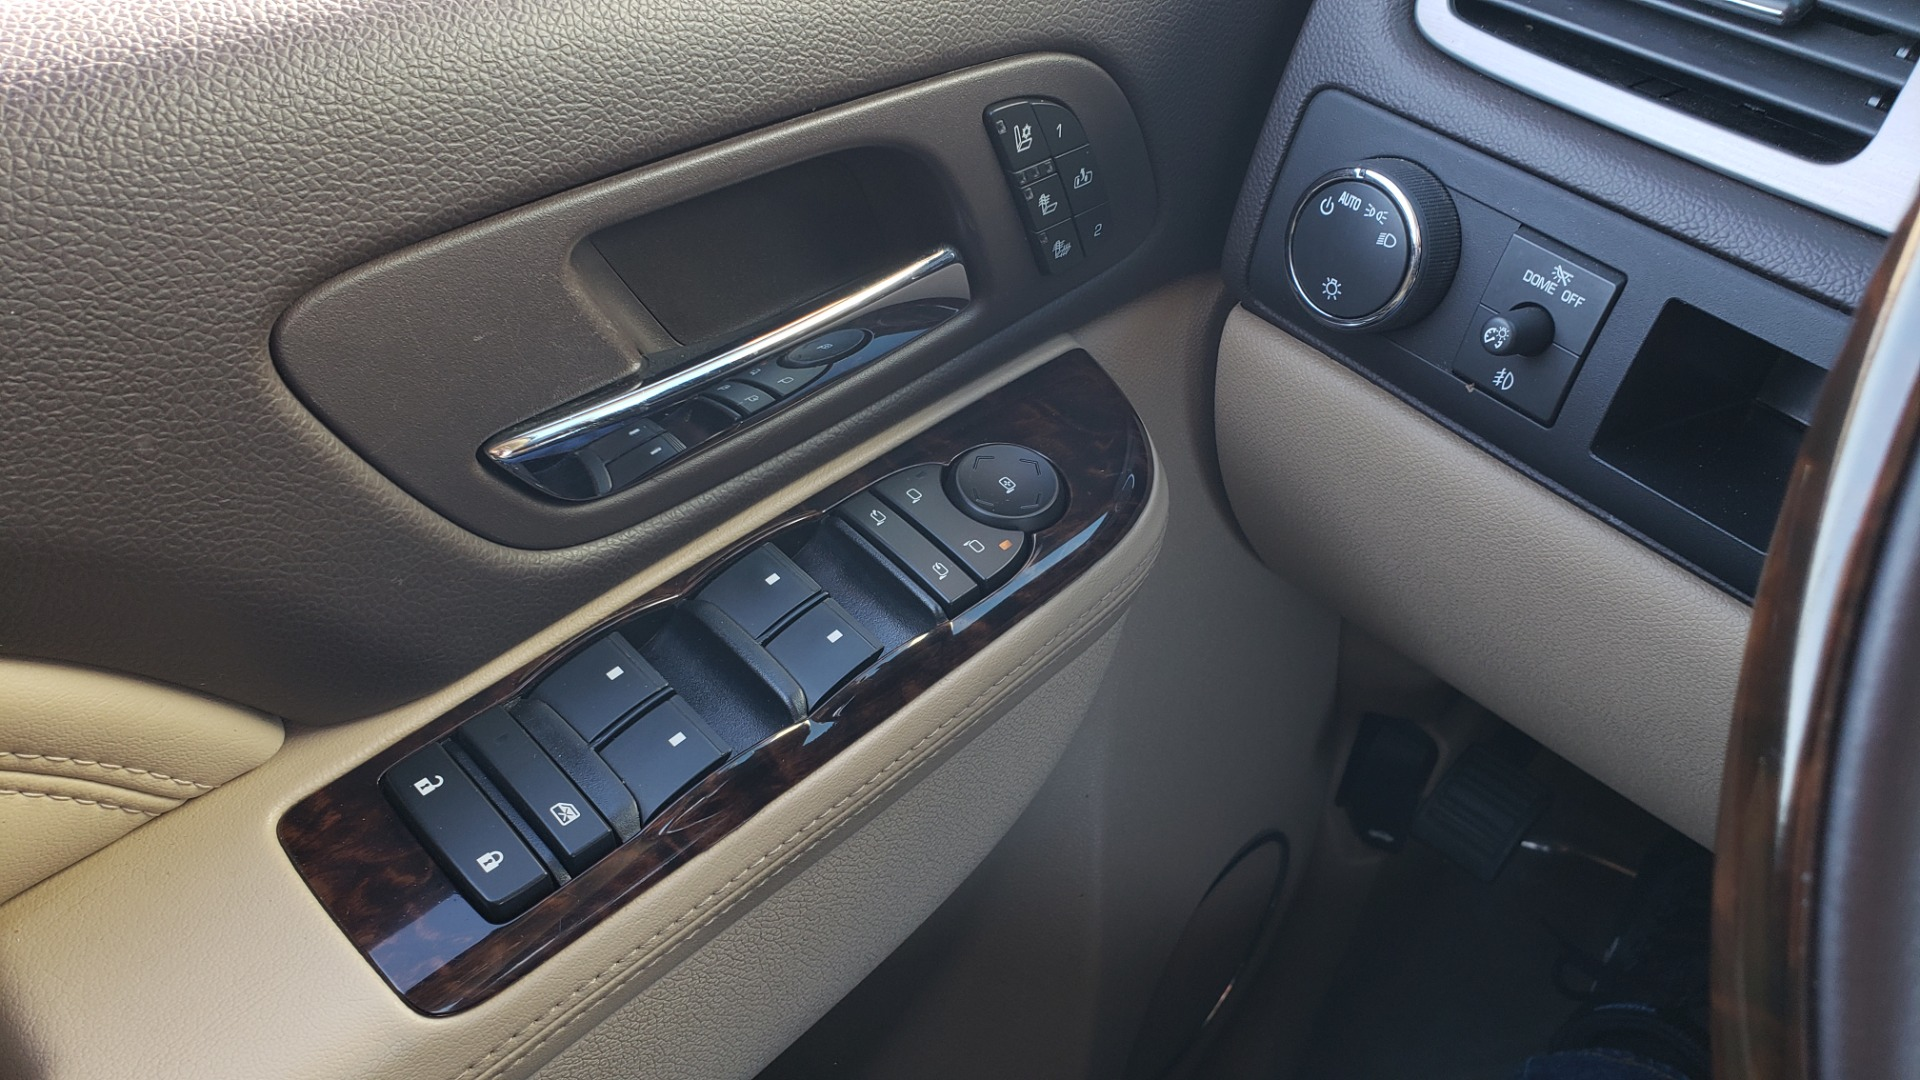 Used 2013 GMC YUKON XL DENALI / AWD / NAV / SUNROOF / 3-ROW / ENTERTAINMENT for sale Sold at Formula Imports in Charlotte NC 28227 39